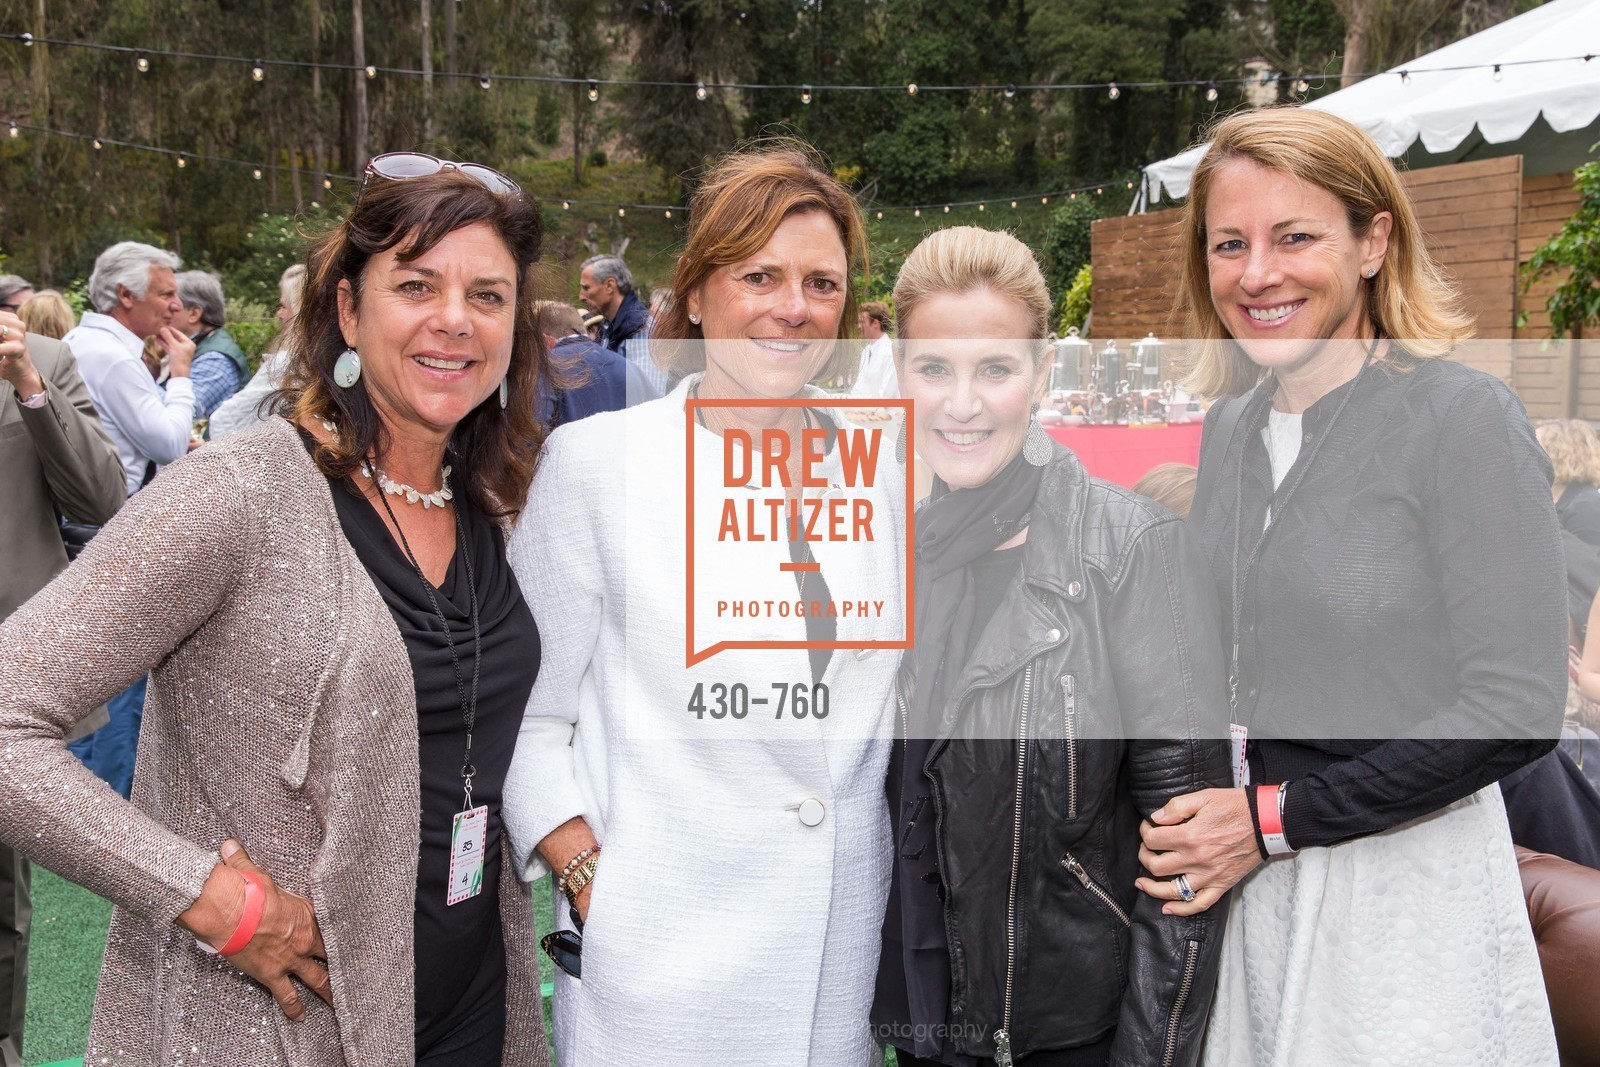 Connie Ring, Lisa Troedson, Lisa Goldman, Laura Hazlett, The Big Picnic! A Benefit & Concert for STERN GROVE FESTIVAL, US, June 14th, 2015,Drew Altizer, Drew Altizer Photography, full-service agency, private events, San Francisco photographer, photographer california